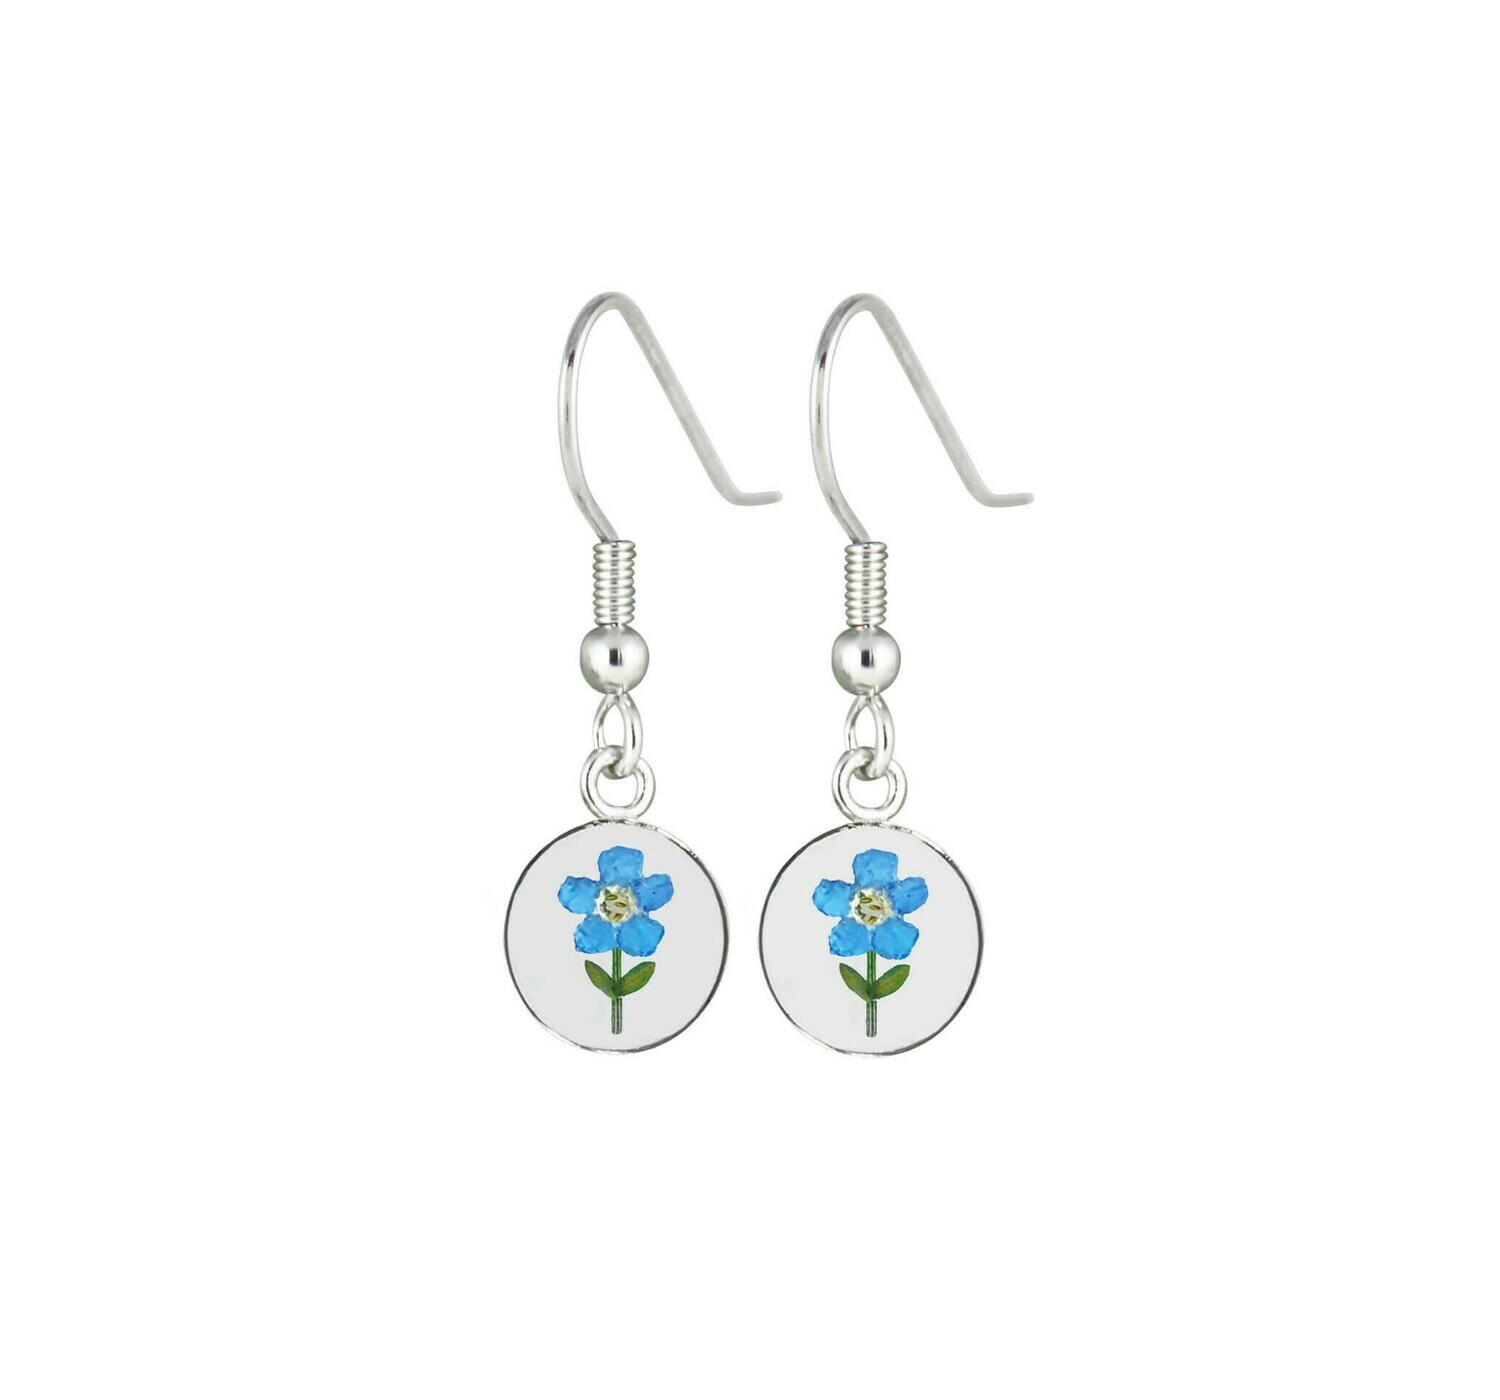 Forget-Me-Not, Circle Hanging Earrings, Transparent